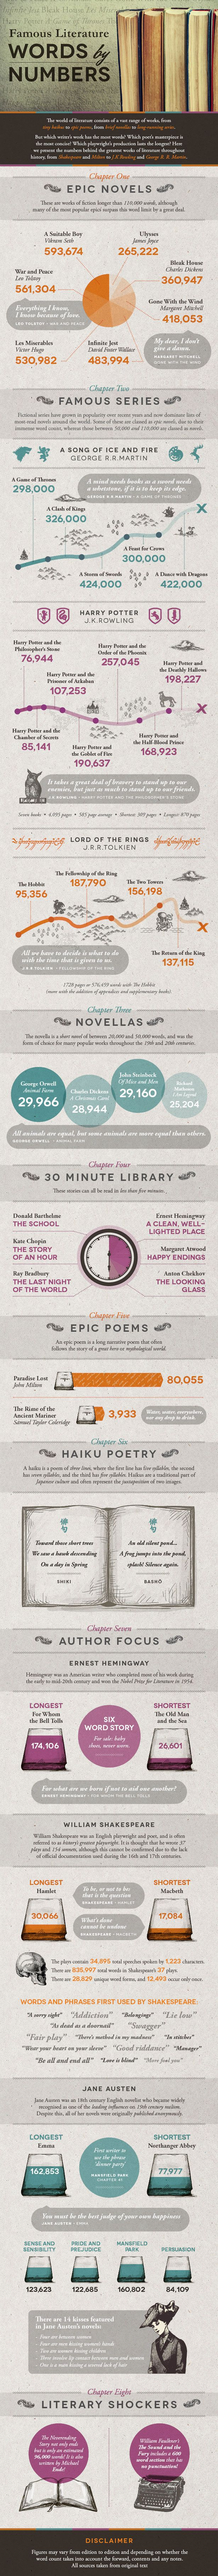 Literary Word Count Infographic - Books - ShortList Magazine